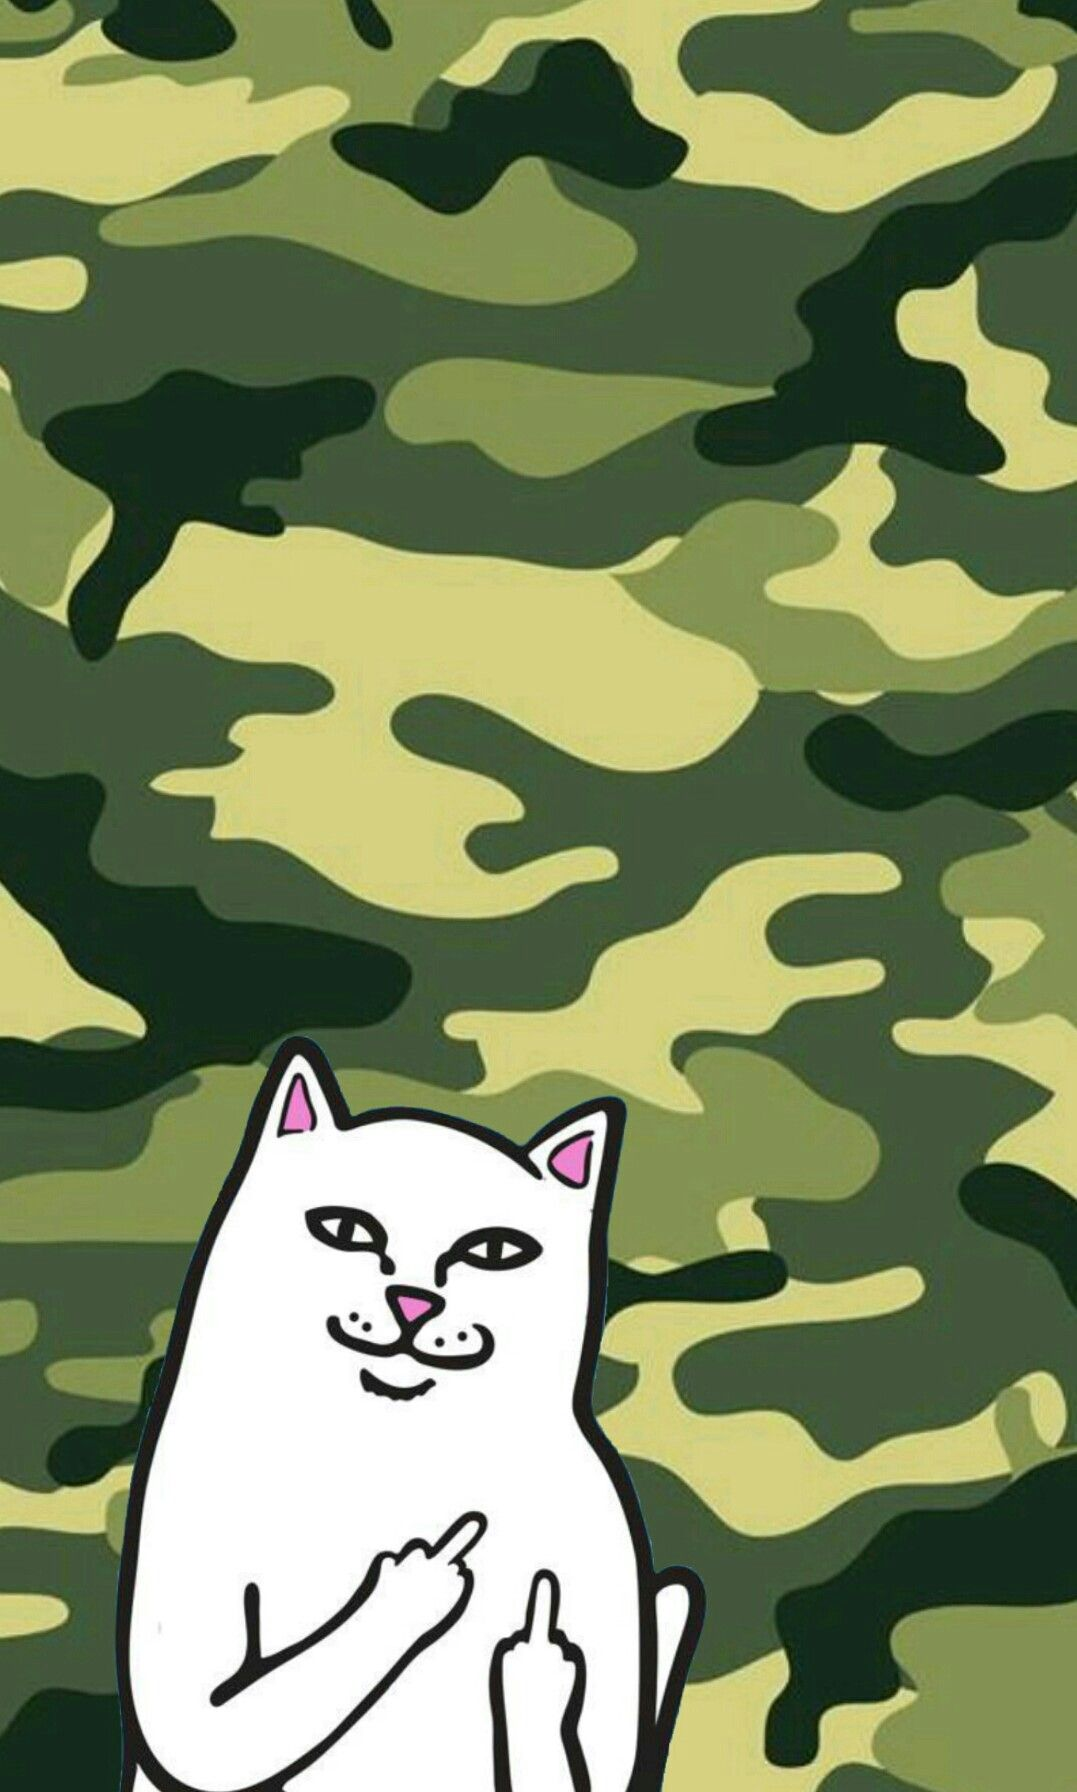 Ripndip iphone wallpaper #ripndip #middle #finger #cat #wallpaper ...